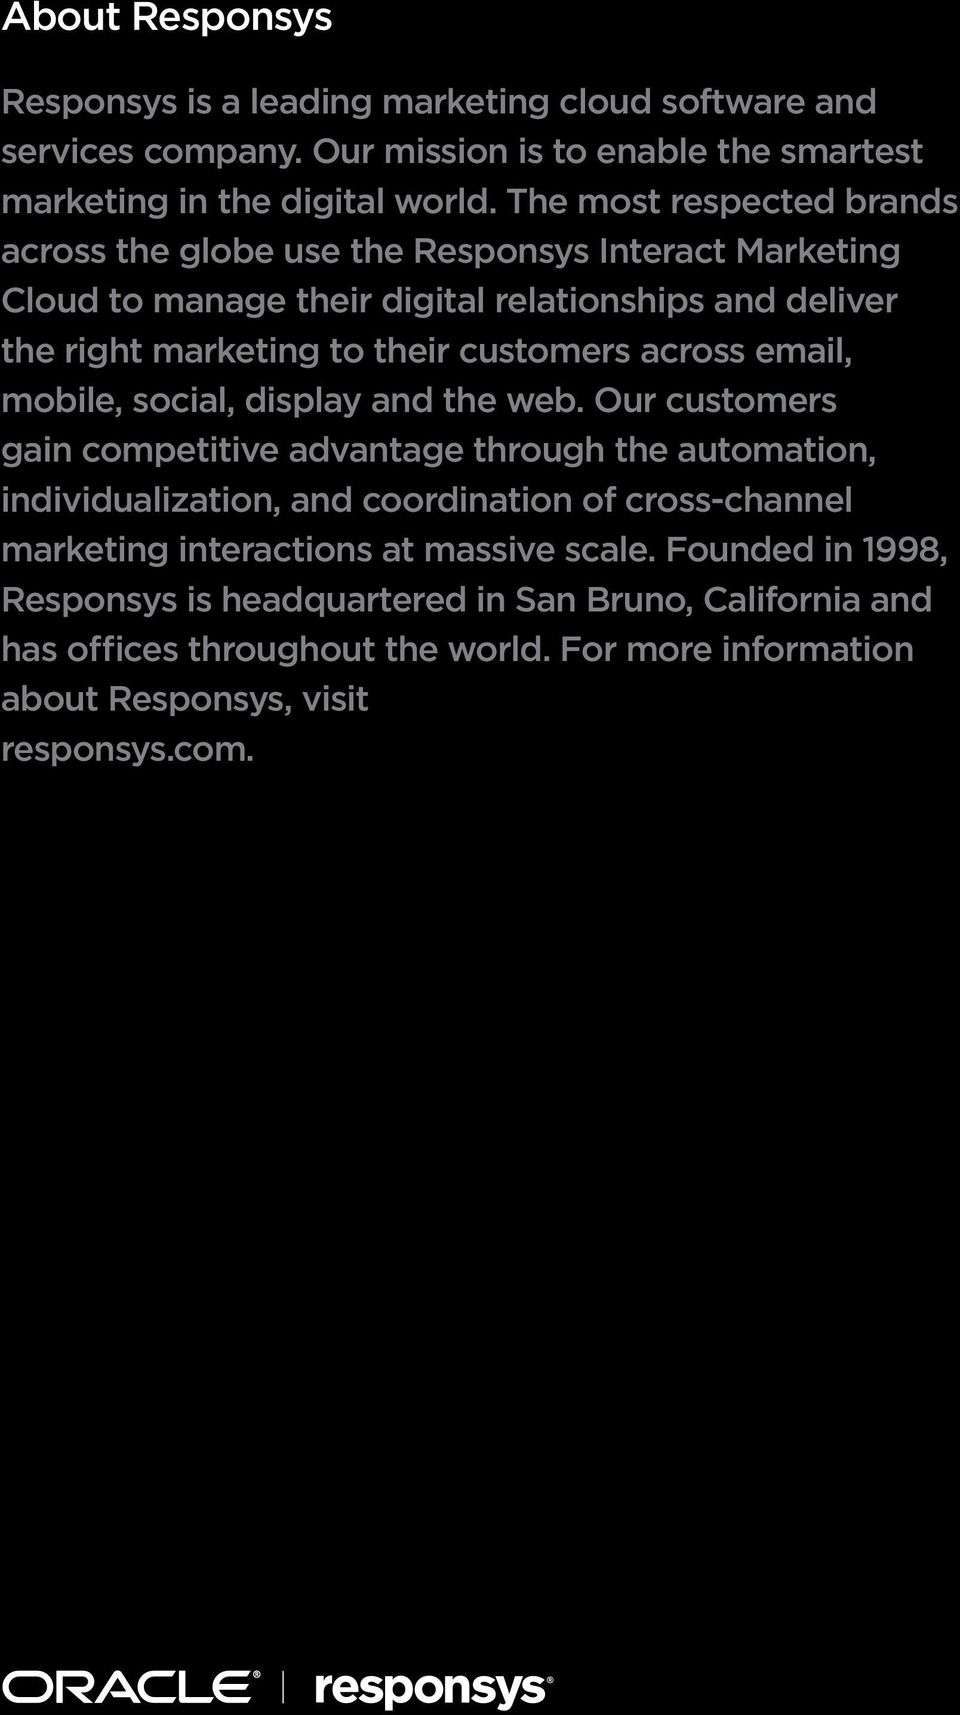 across email, mobile, social, display and the web.